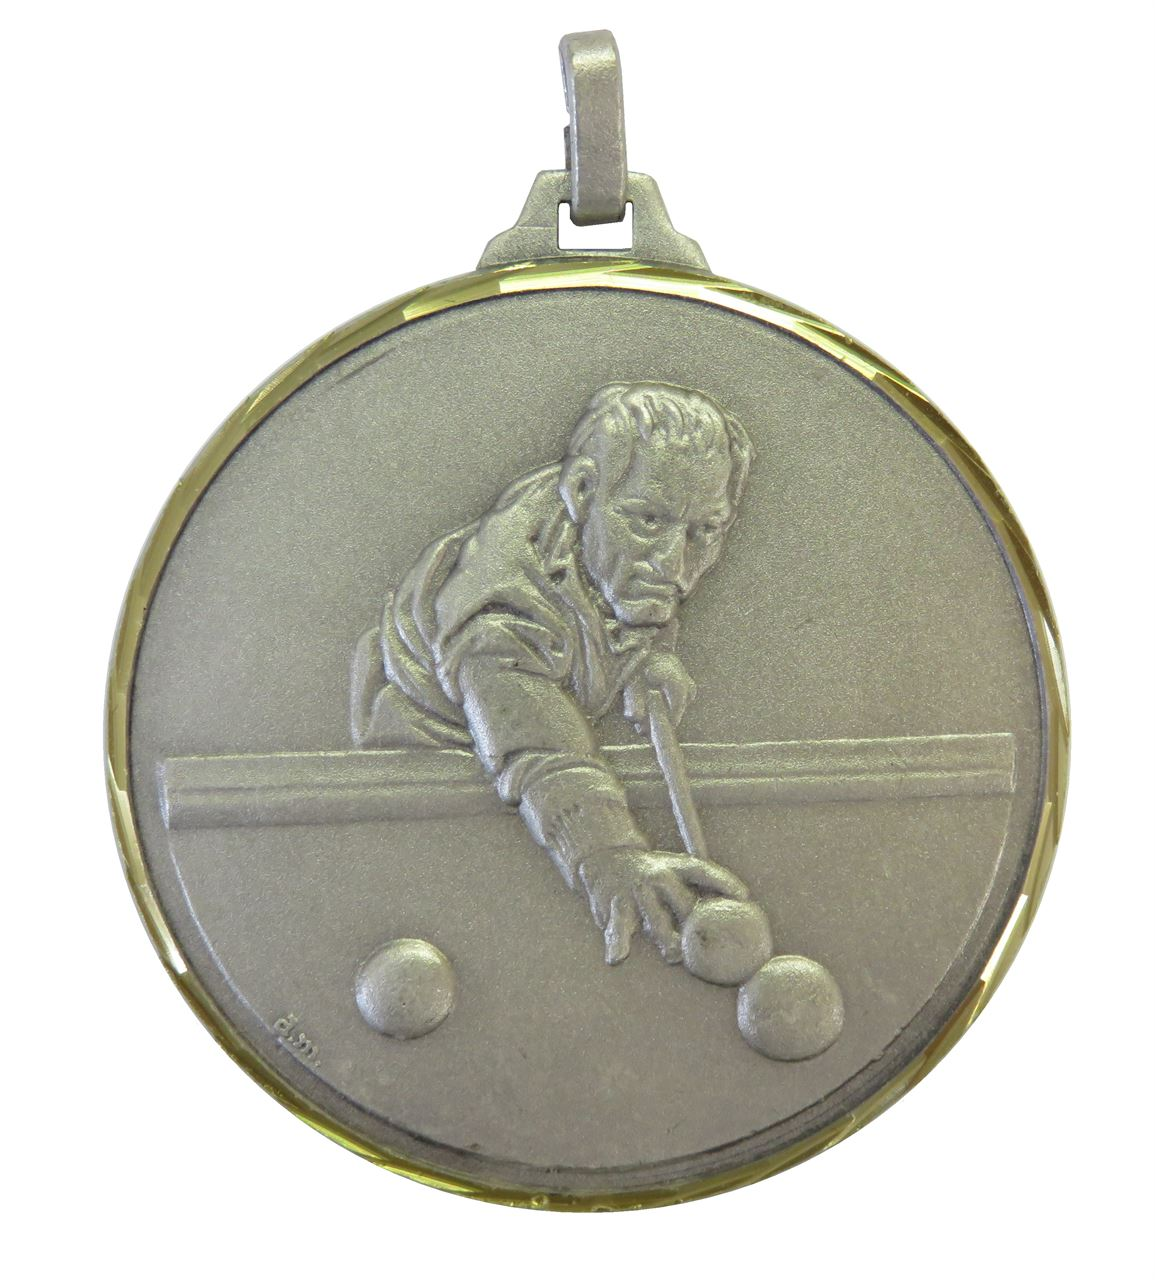 Silver Faceted Snooker / Pool Medal (size: 52mm) - 147F